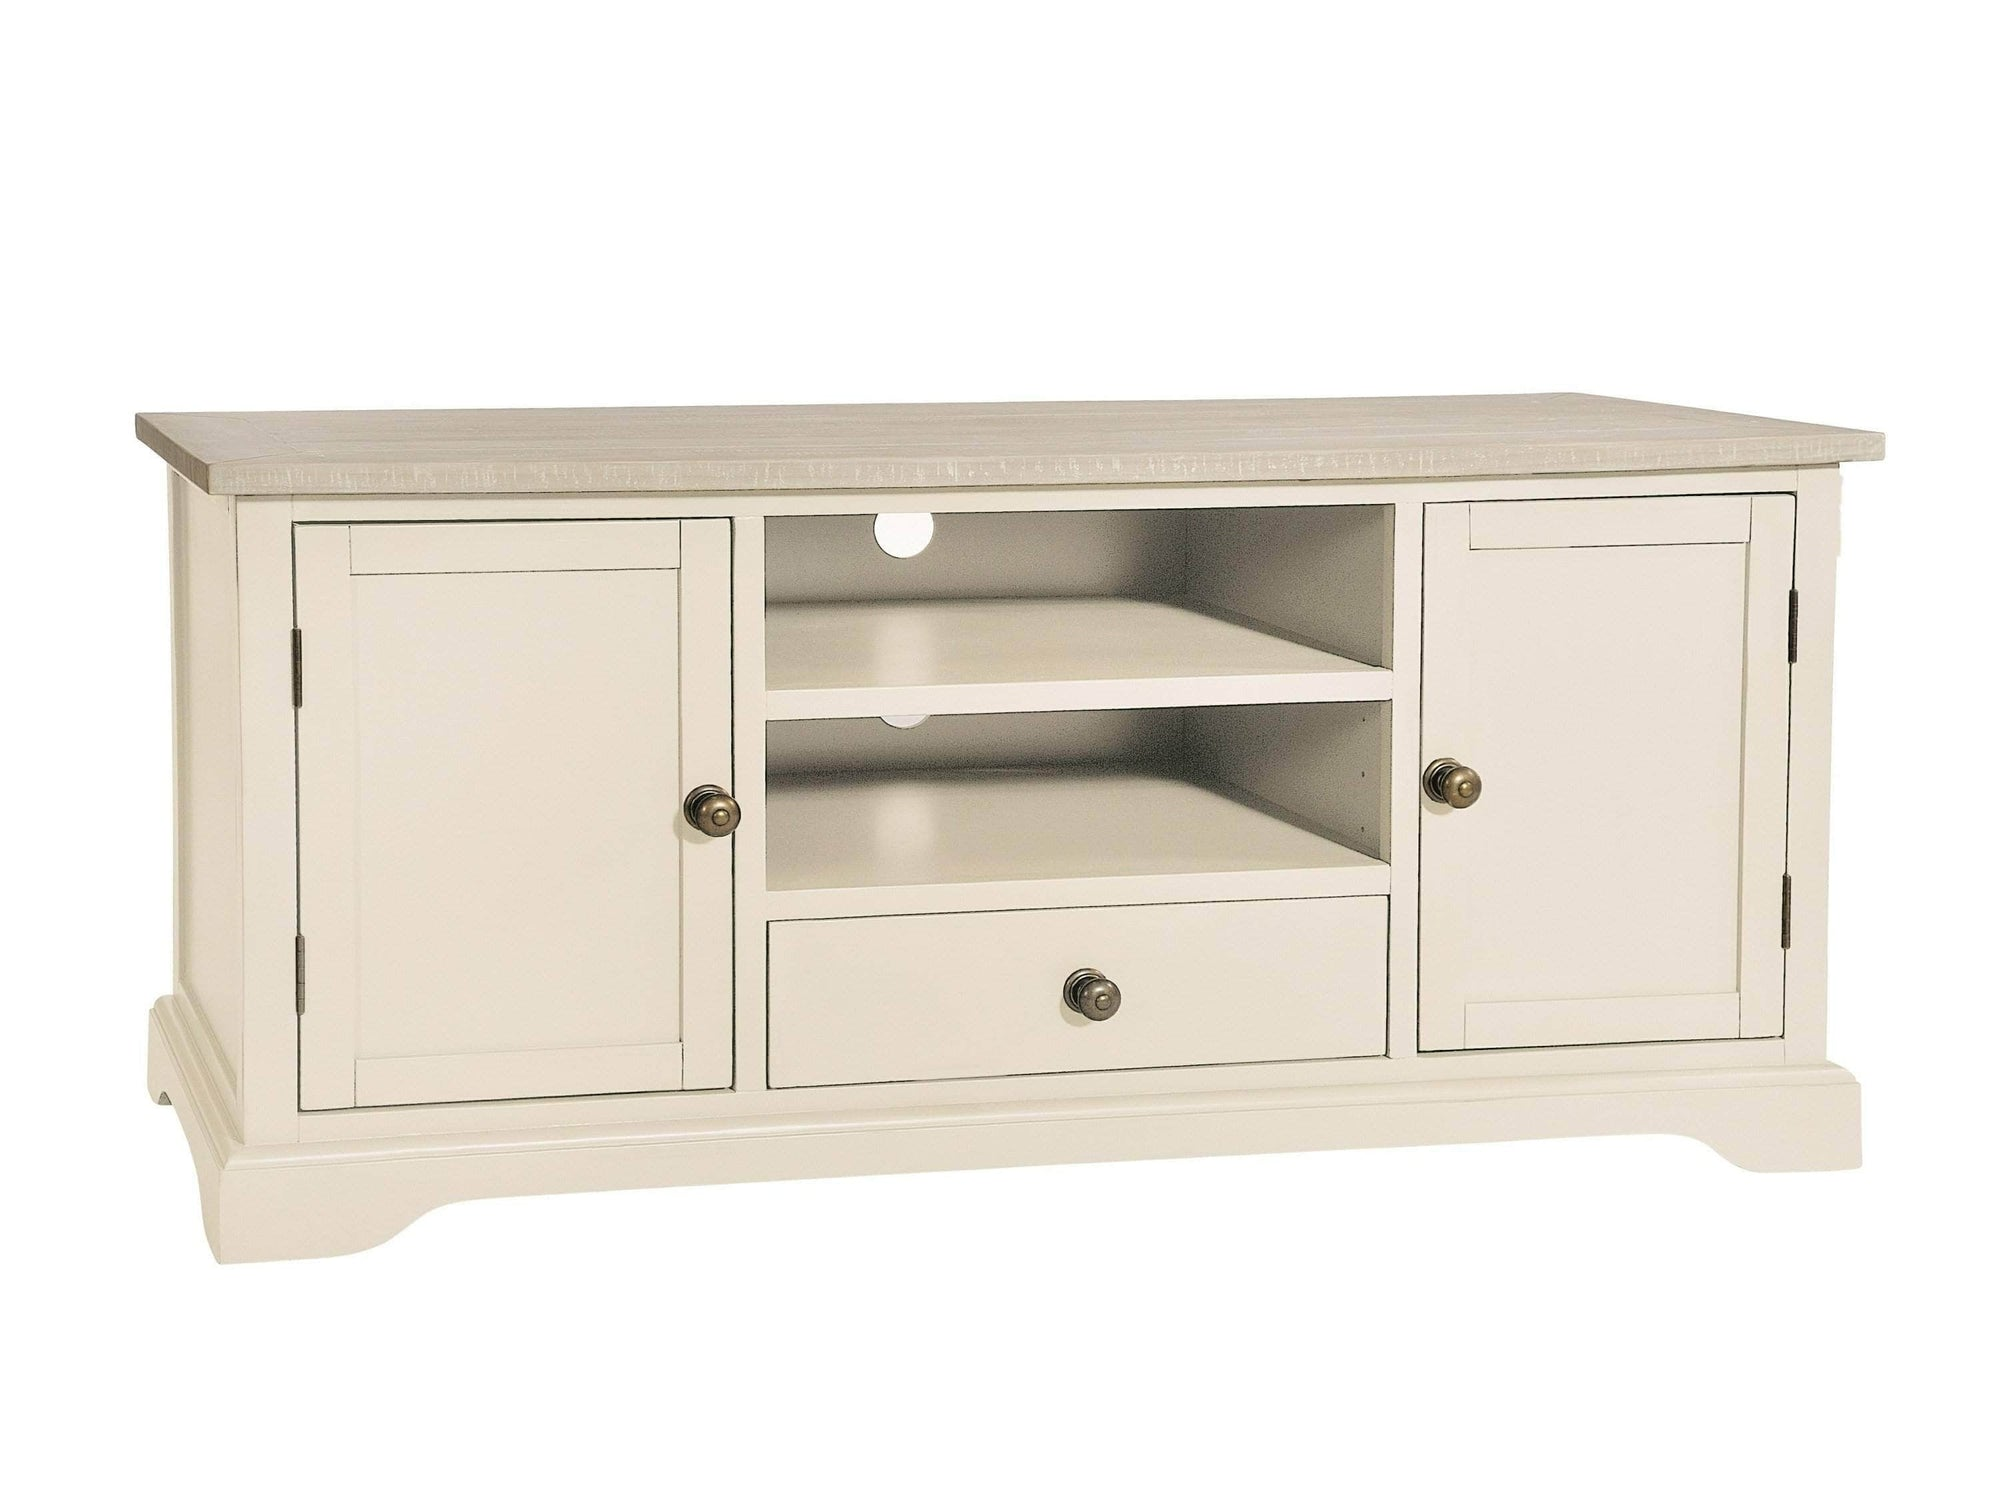 TV cabinet painted in ivory white colour, with distressed markings to the paint.